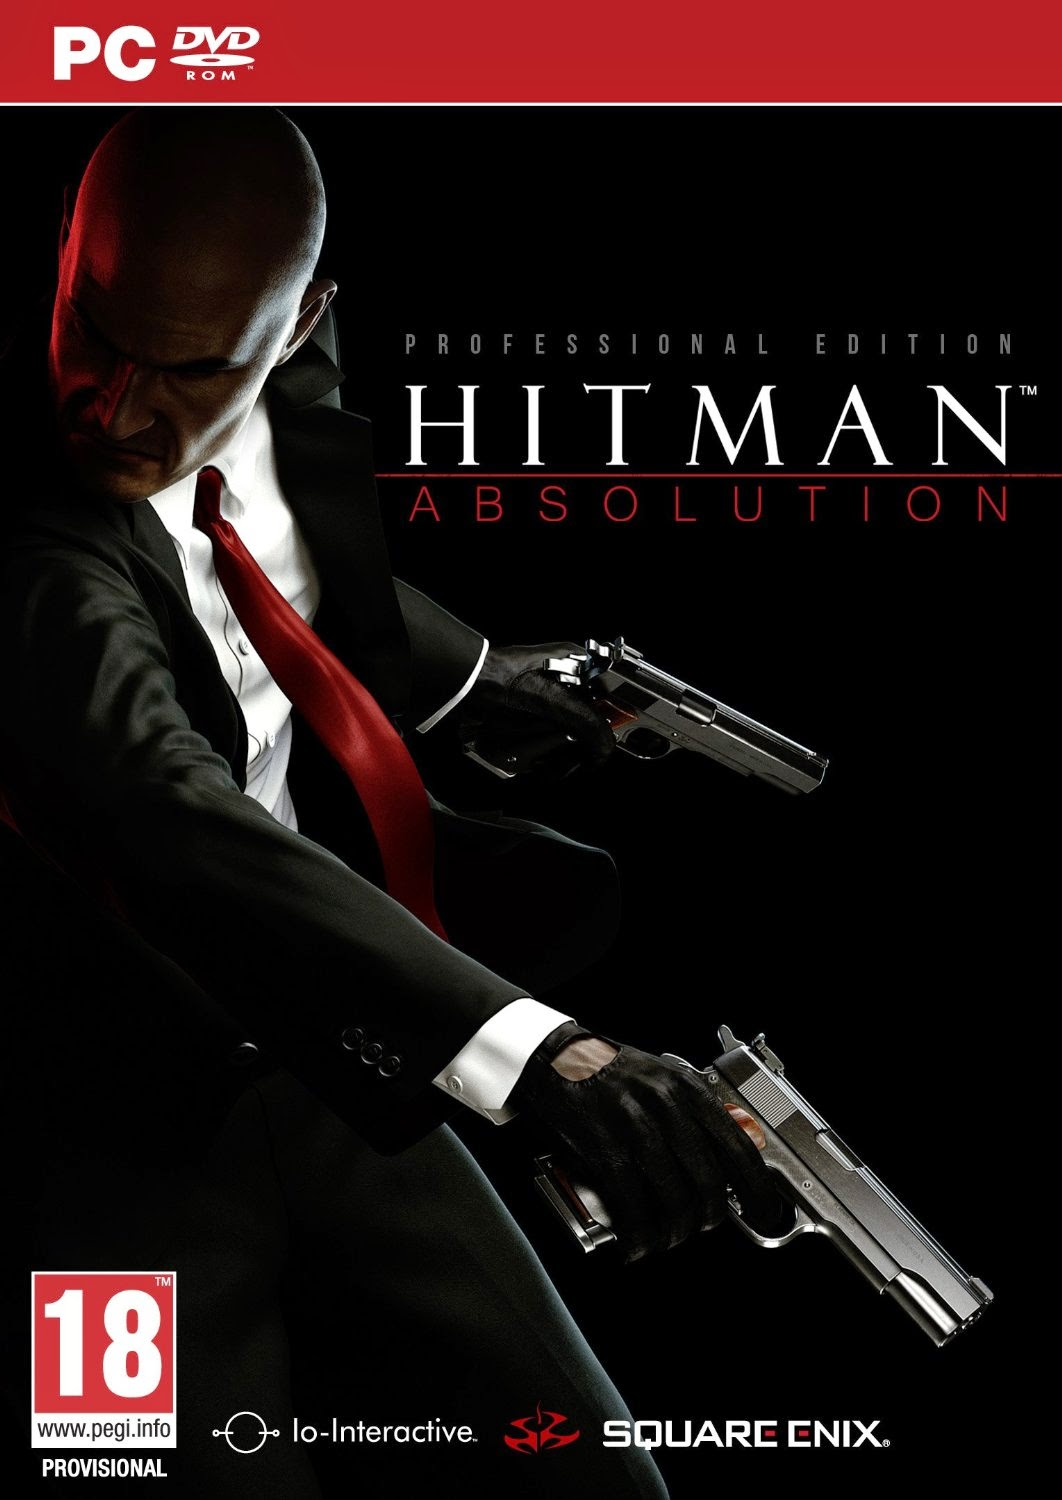 HITMAN-ABSOLUTION-PROFESSIONAL-EDITION